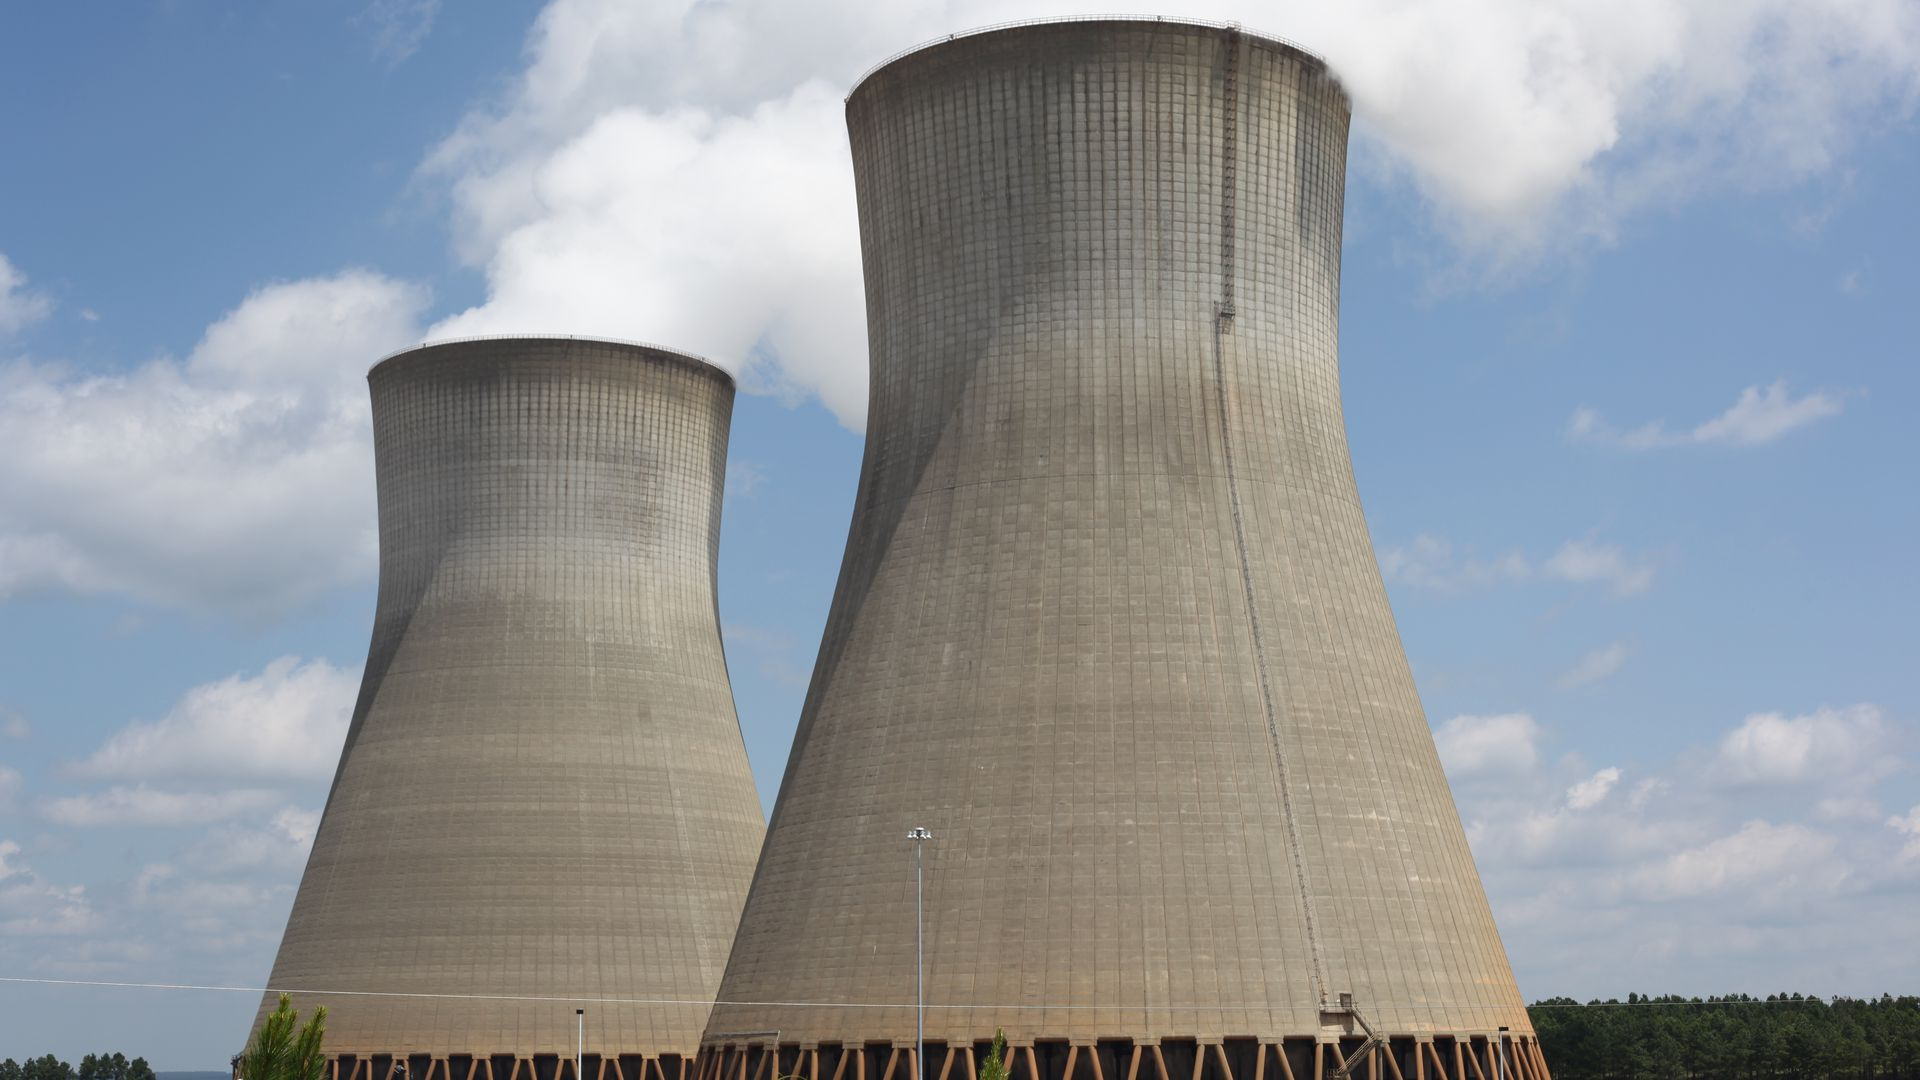 Two nuclear reactors